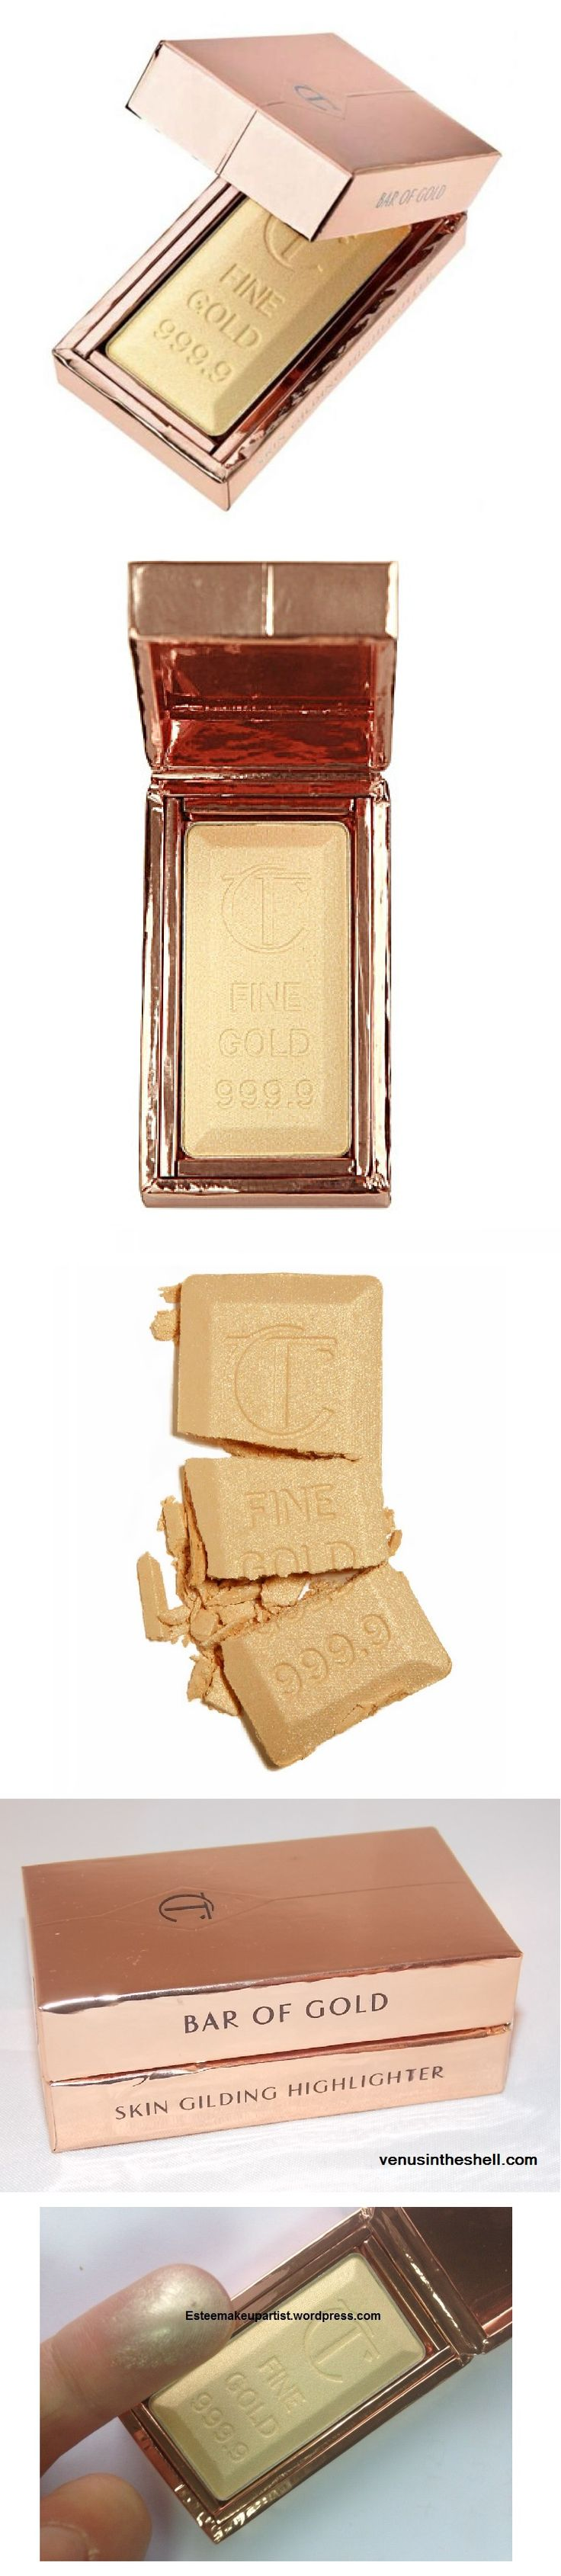 Charlotte Tilbury Bar of Gold Skin Gilding Highlighter | Fall 2015 | already available in the UK, but not in the USA.